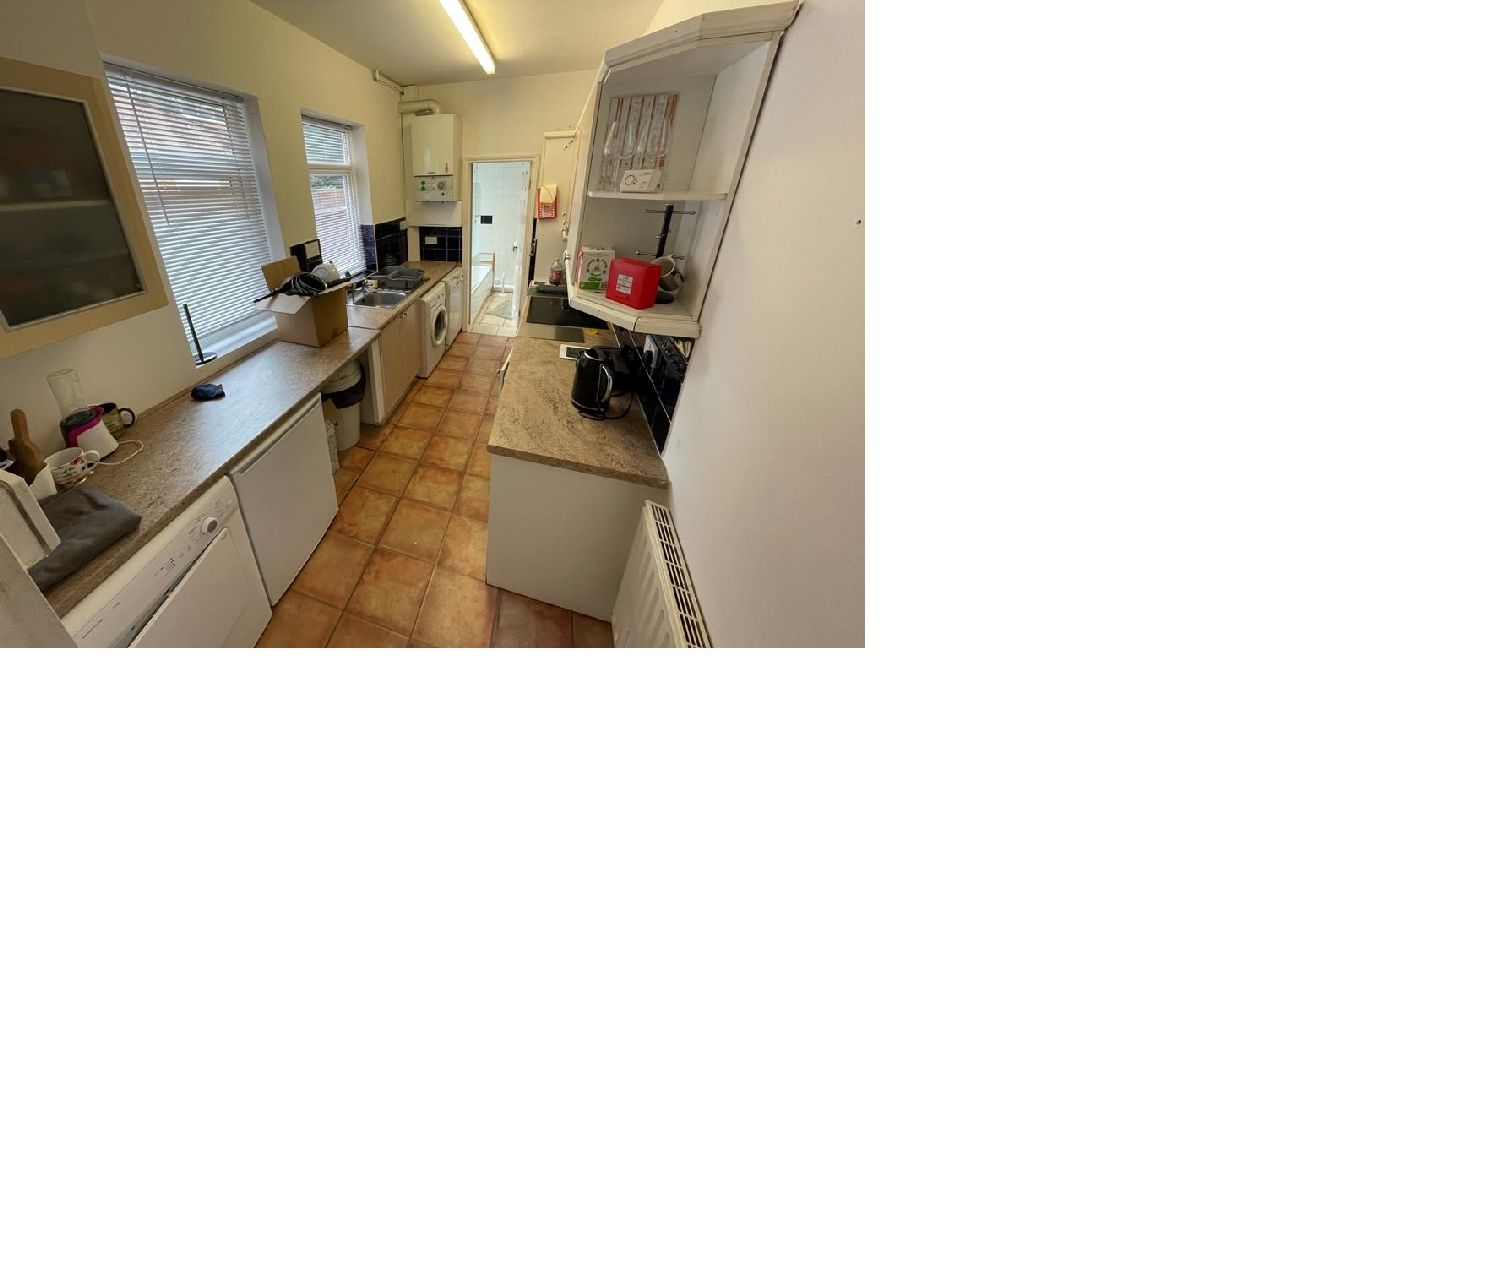 5 Bedrooms House Share for rent in Dawlish Road, Selly Oak, West Midlands, B29 7AR